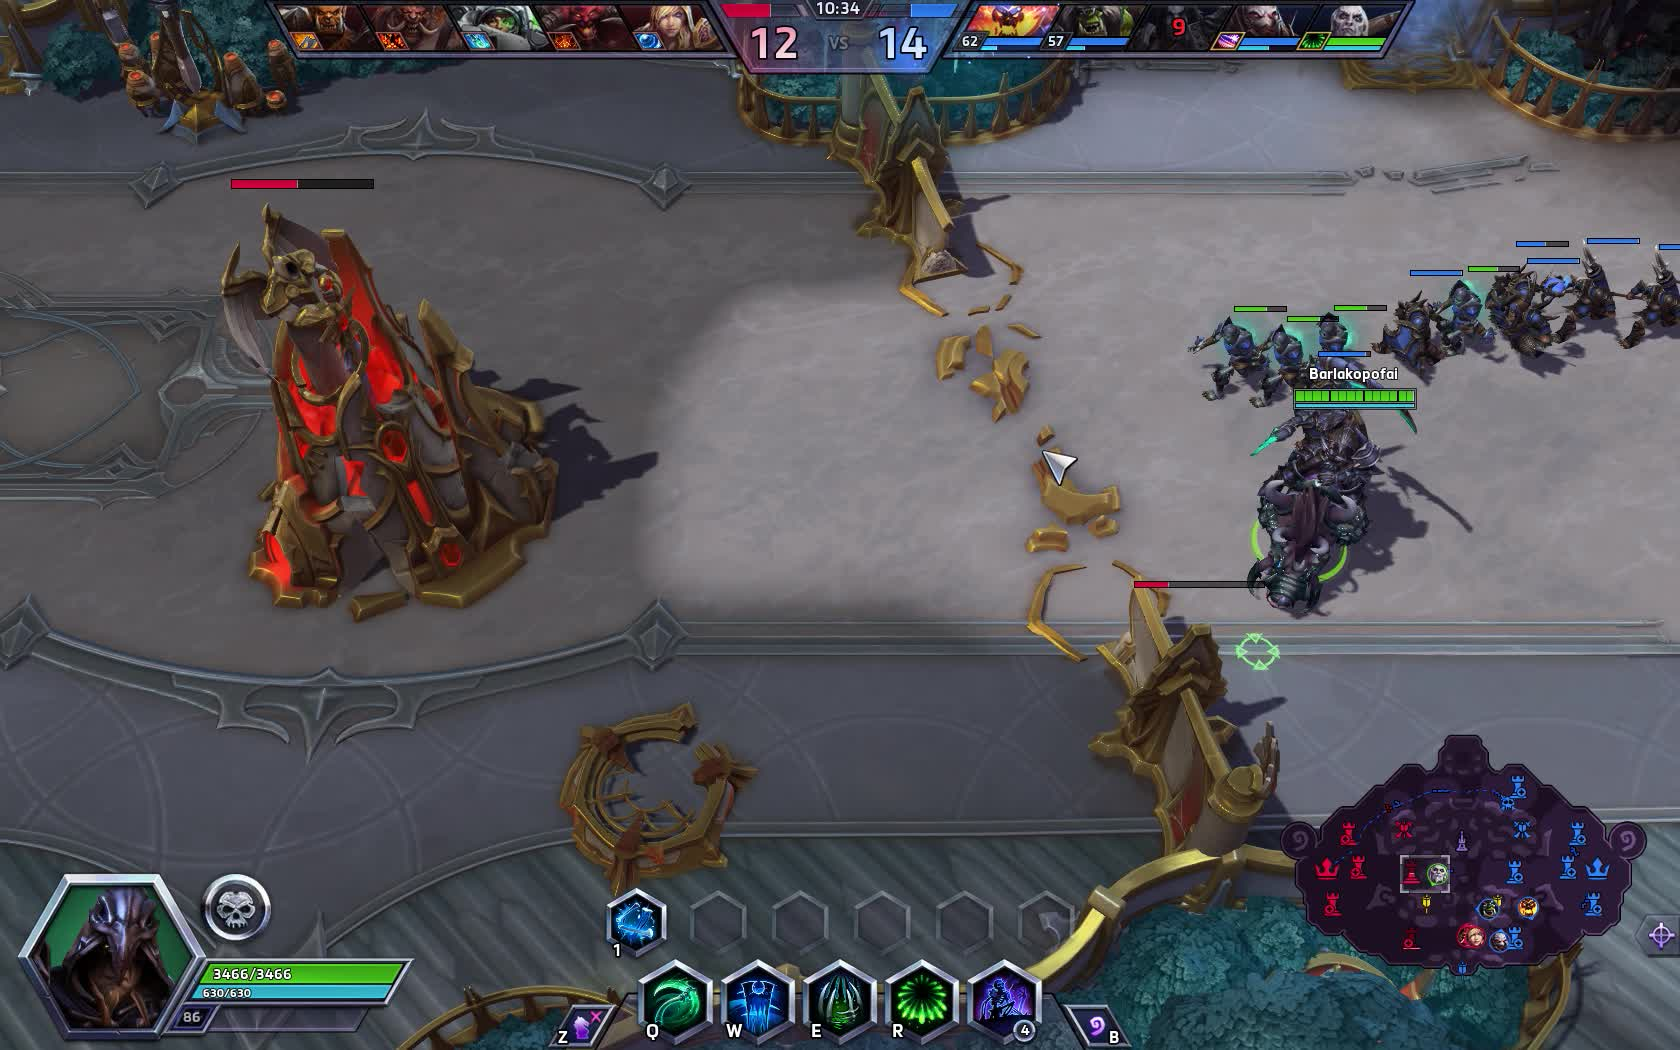 heroesofthestorm, Heroes of the Storm 2018.12.01 - 23.52.41.08.DVR GIFs